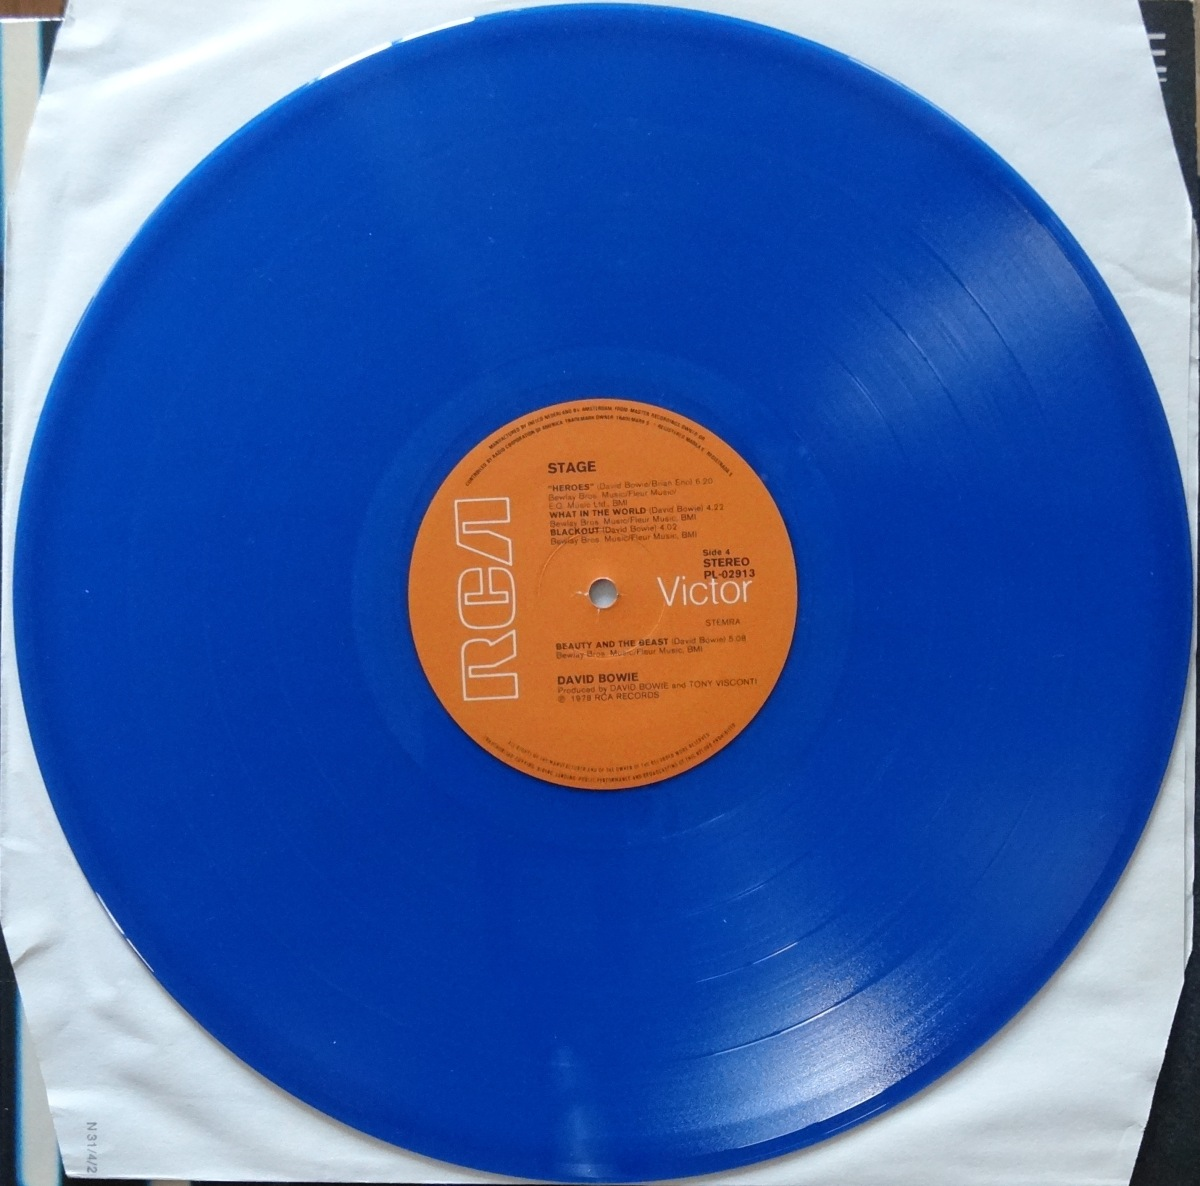 From The Stacks: David Bowie, 'Stage' (blue vinyl)